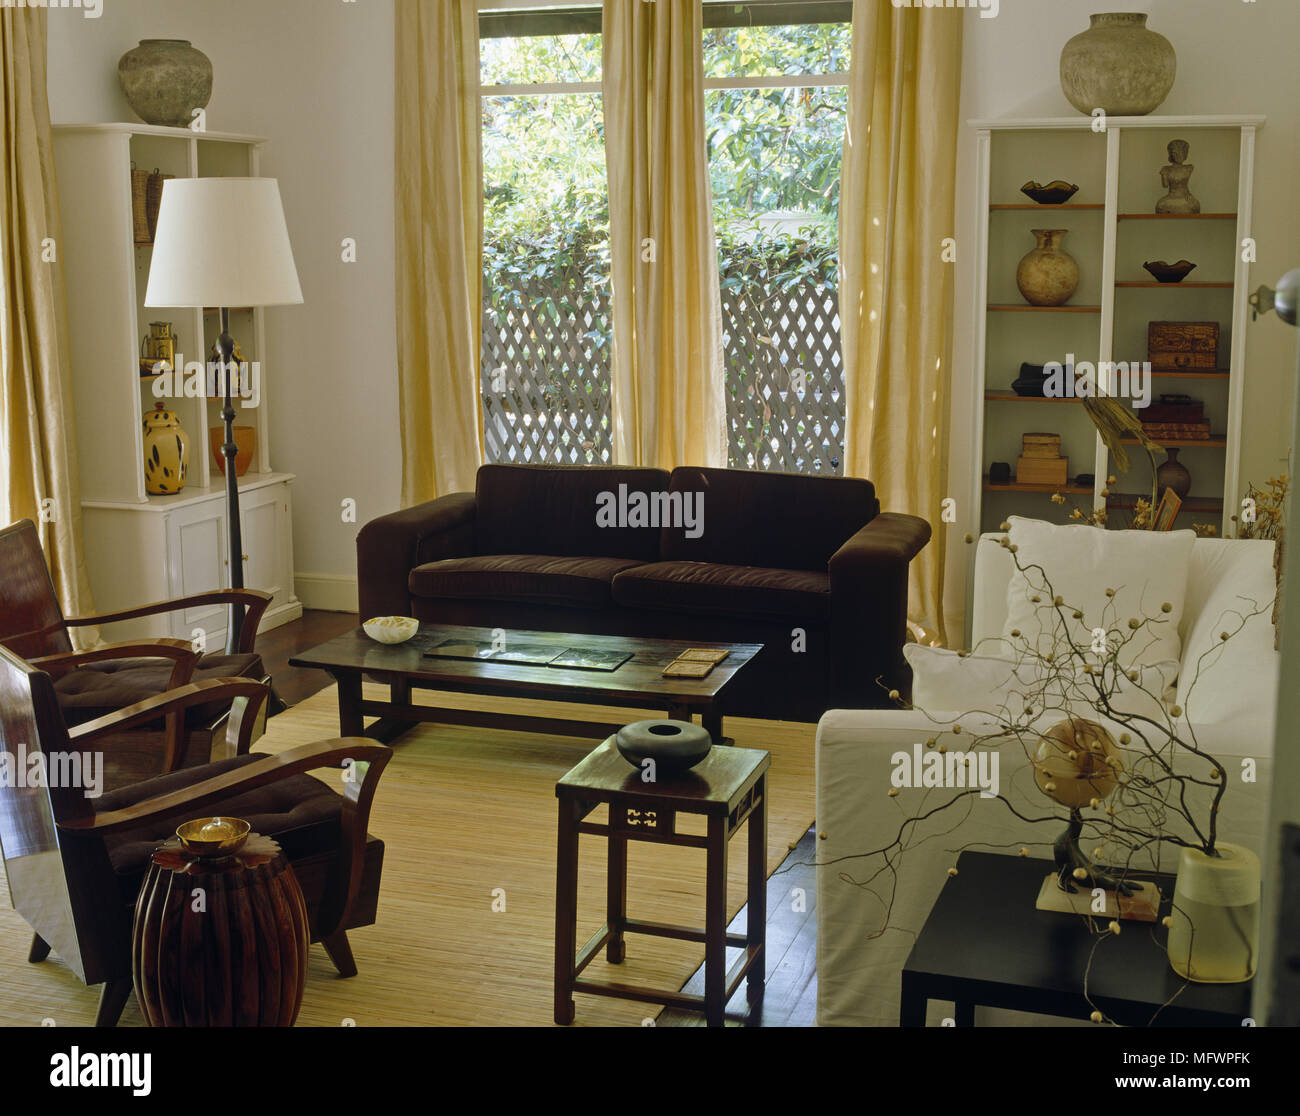 Upholstered Sofa And Chairs Around Coffee Table In Front Of Window